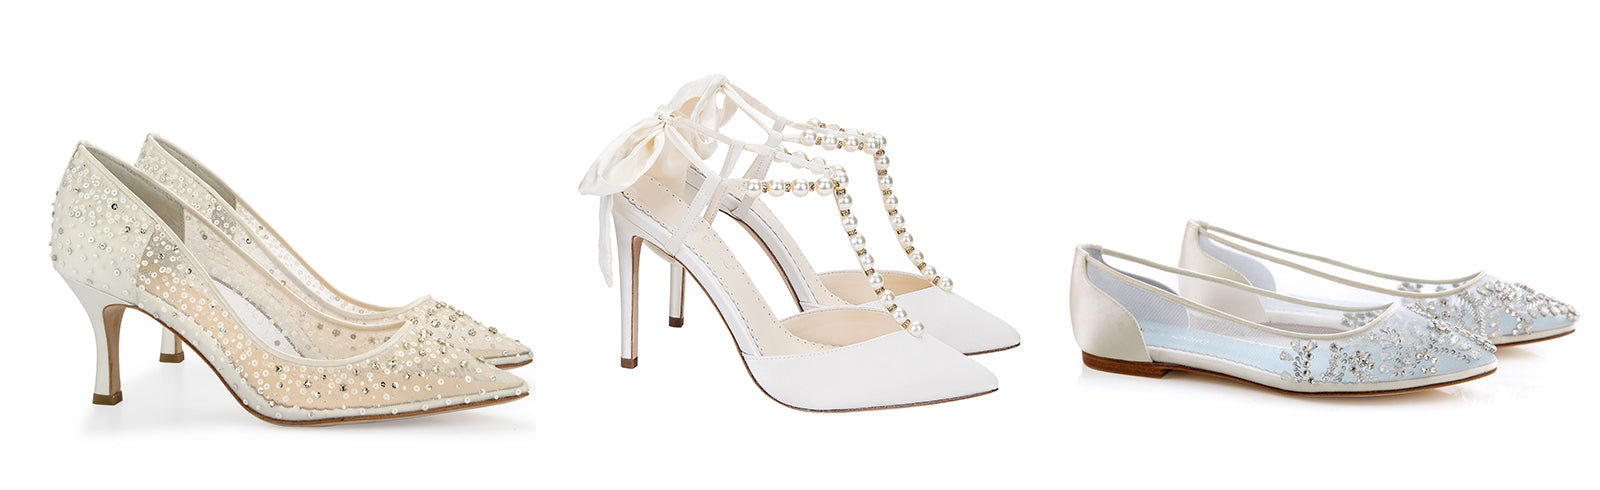 bella belle designer wedding shoes pronovias wedding dress